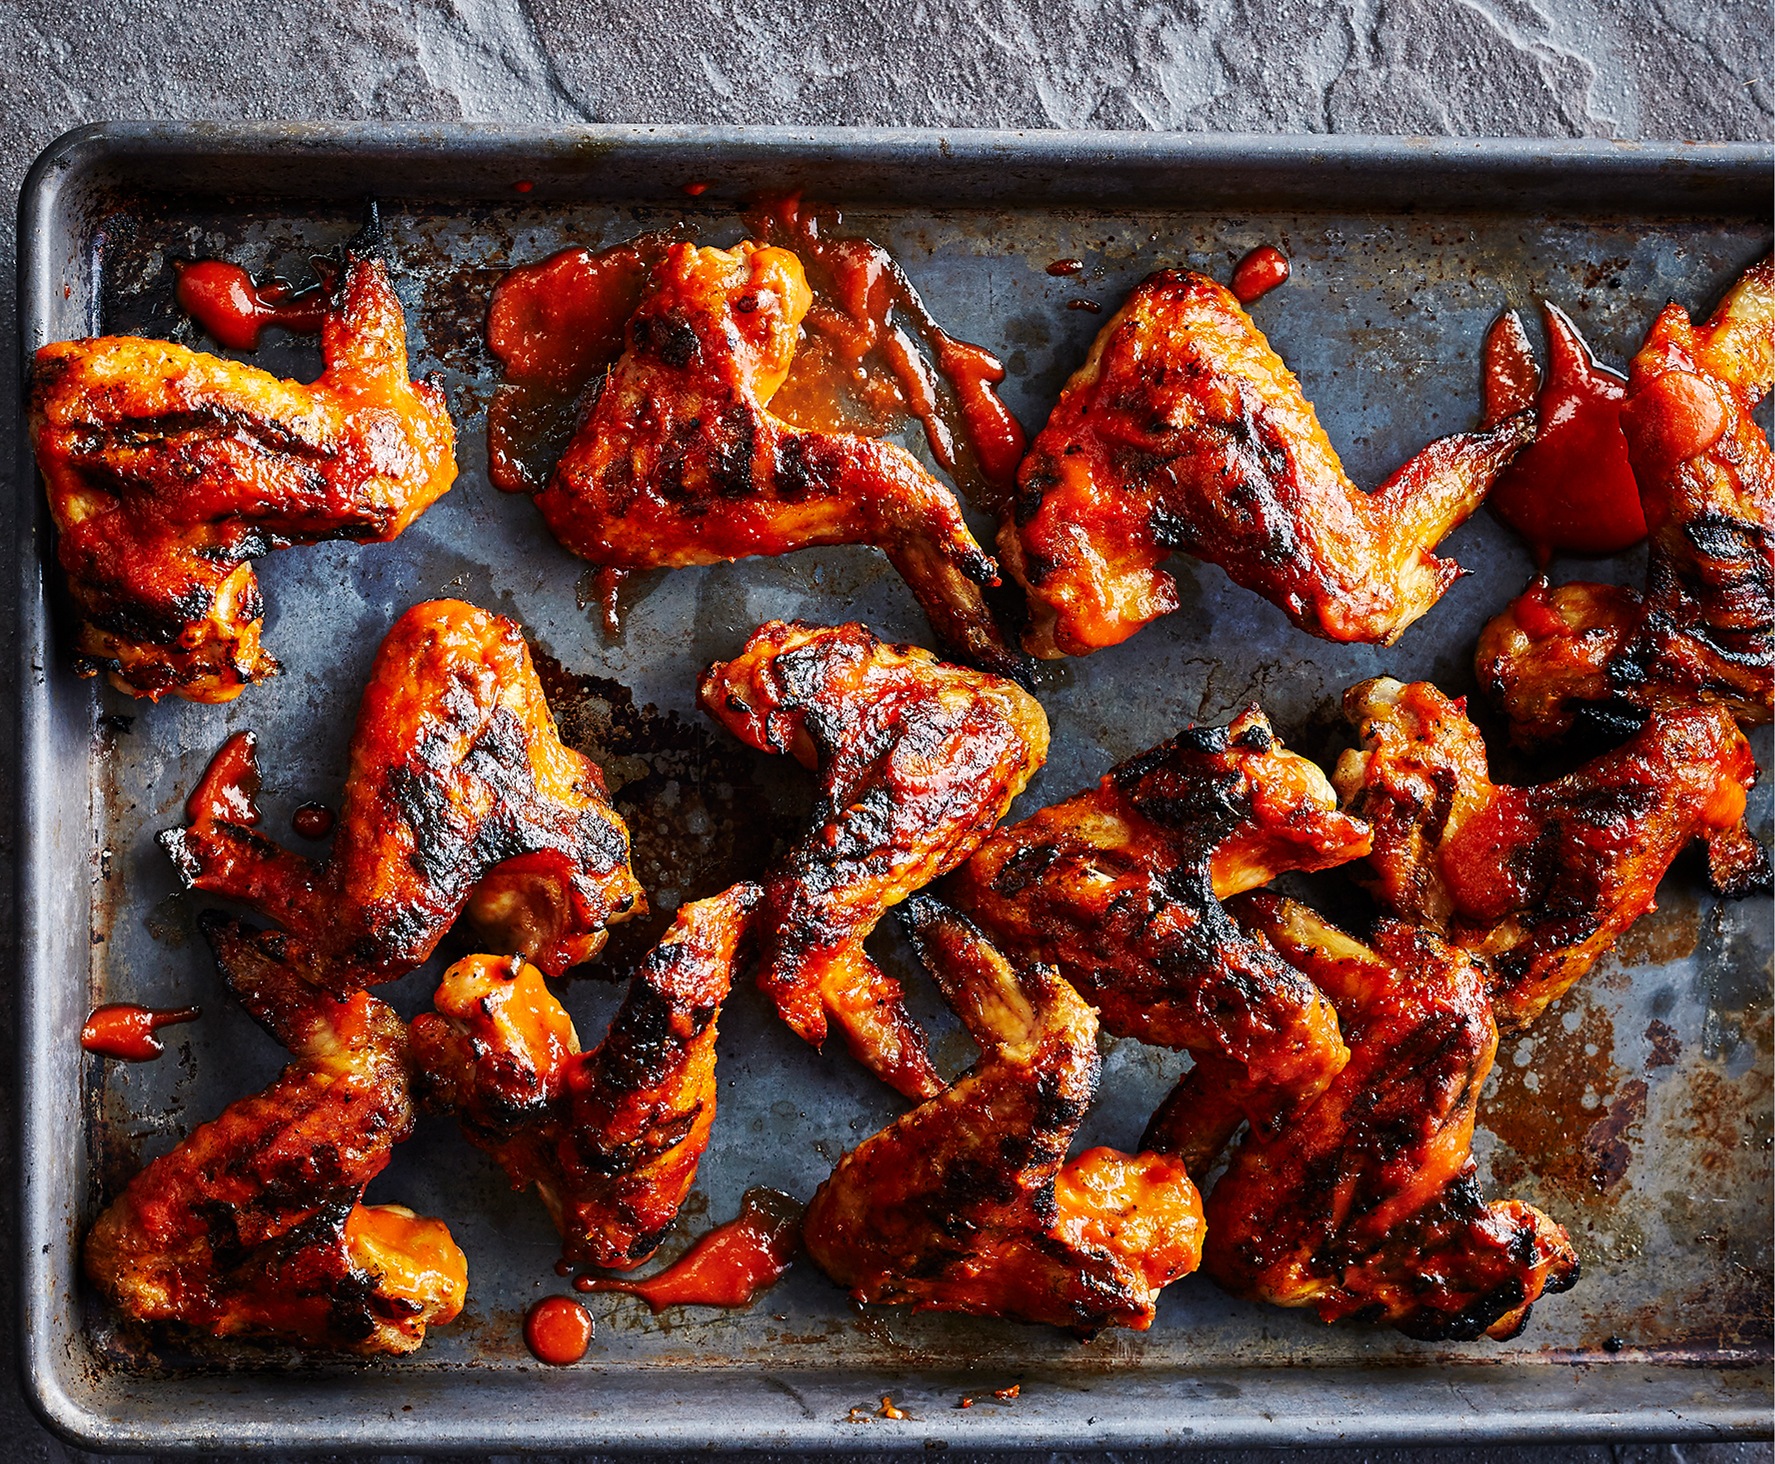 Chicken wings recipes - Cherry Bourbon chicken wings tout